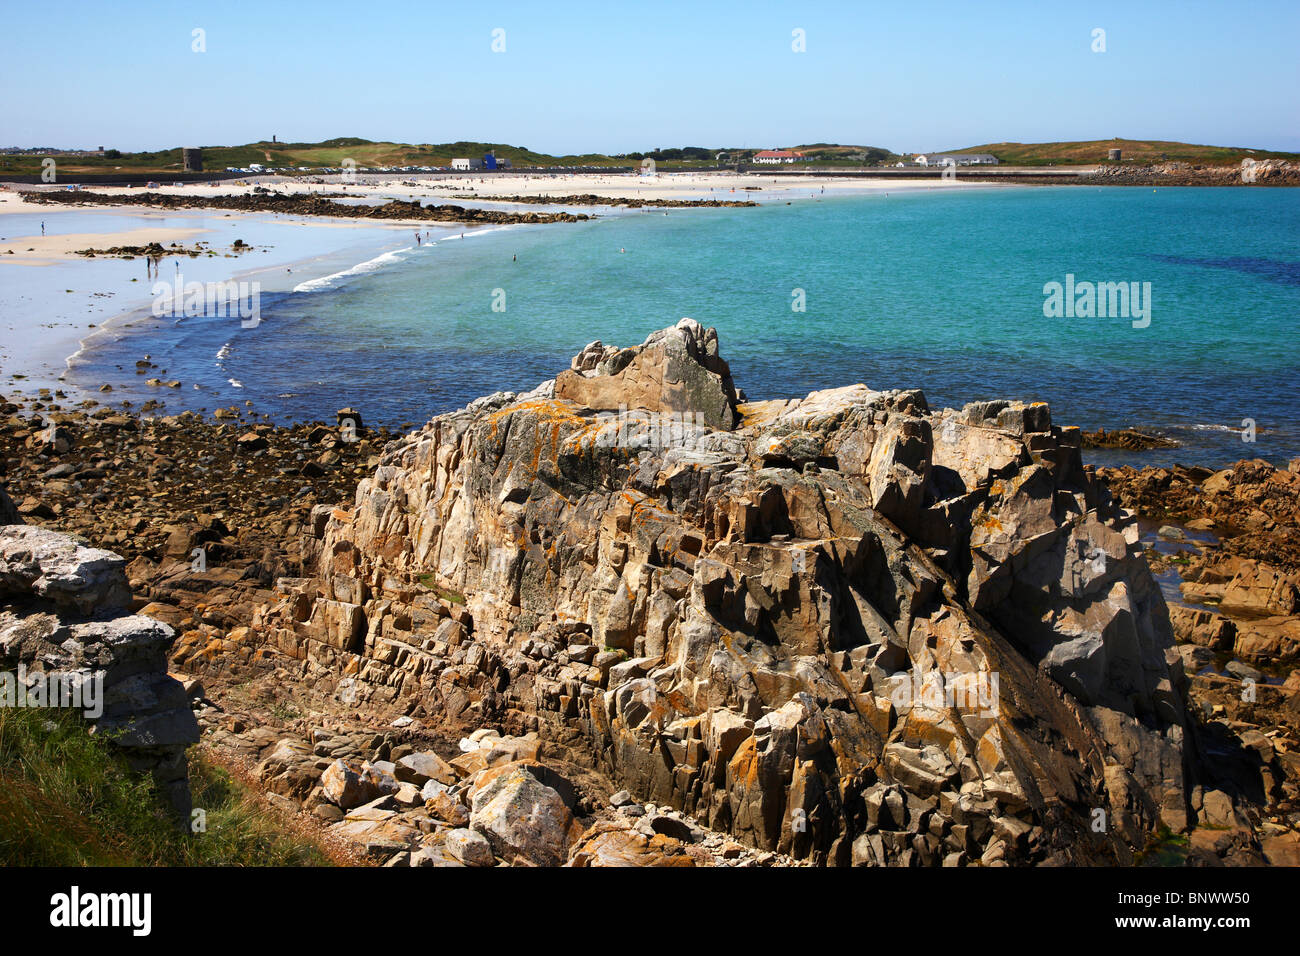 Rough coastline, rocks, north coast of Guernsey, Channel Islands, UK, Europe Stock Photo